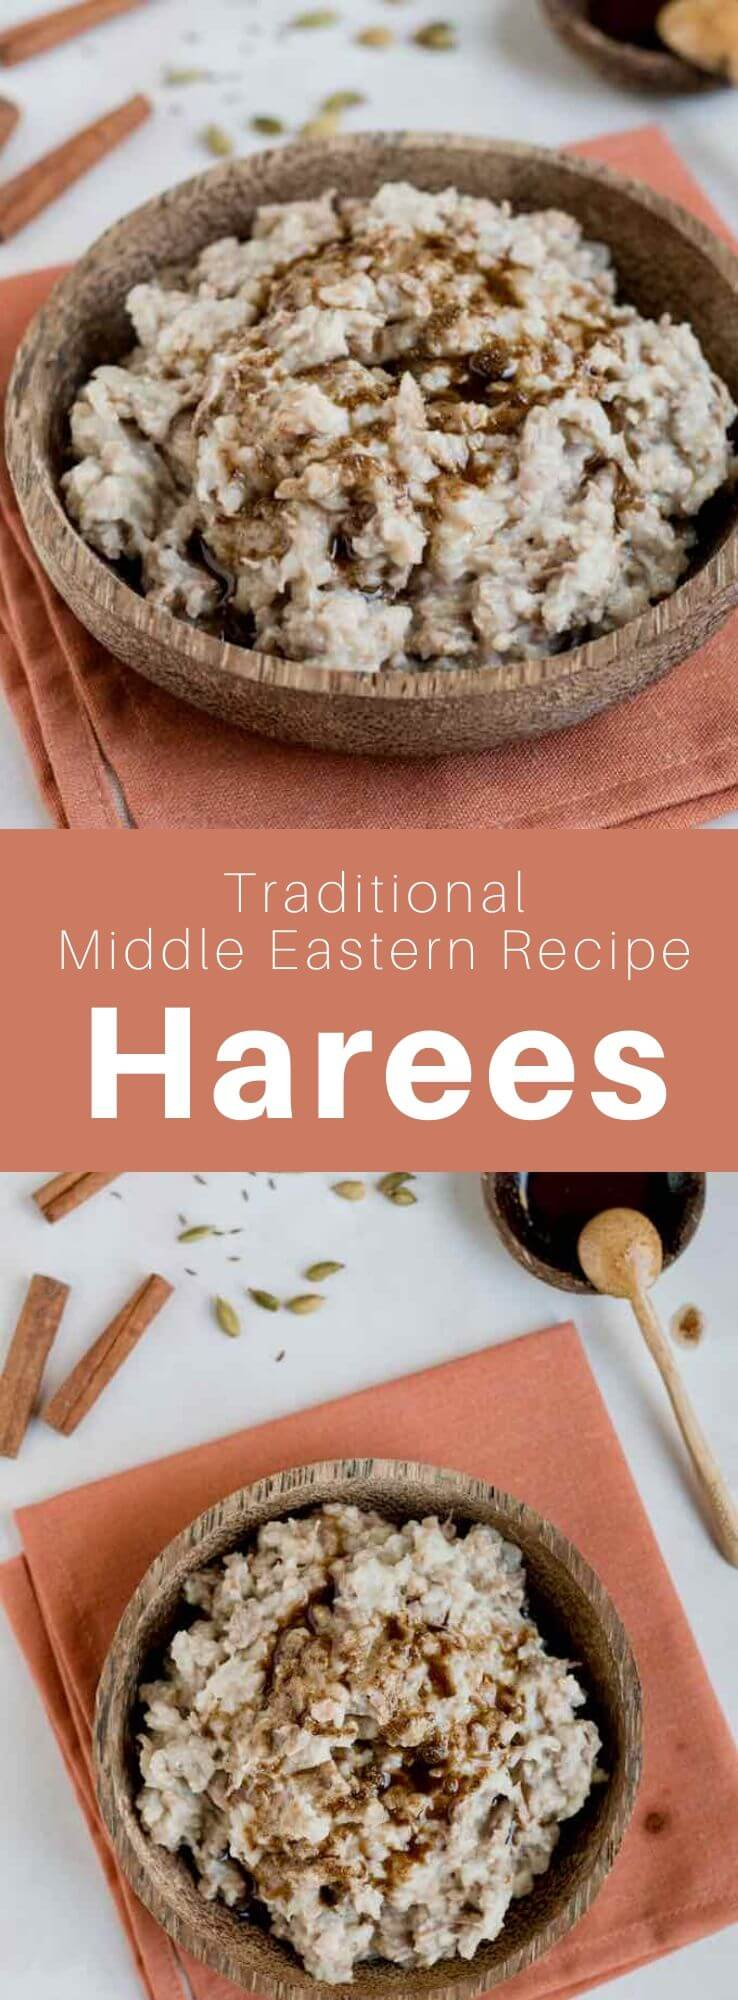 Harees, also called jareesh or harissa for Armenians is a dish of boiled, crushed or roughly ground wheat, mixed with lamb meat. It is equally popular in Iraq and other Persian Gulf states, especially during the month of Ramadan. #MiddleEast #MiddleEastern #Armenia #ArmenianCuisine #ArmenianRecipe #WorldCuisine #196flavors